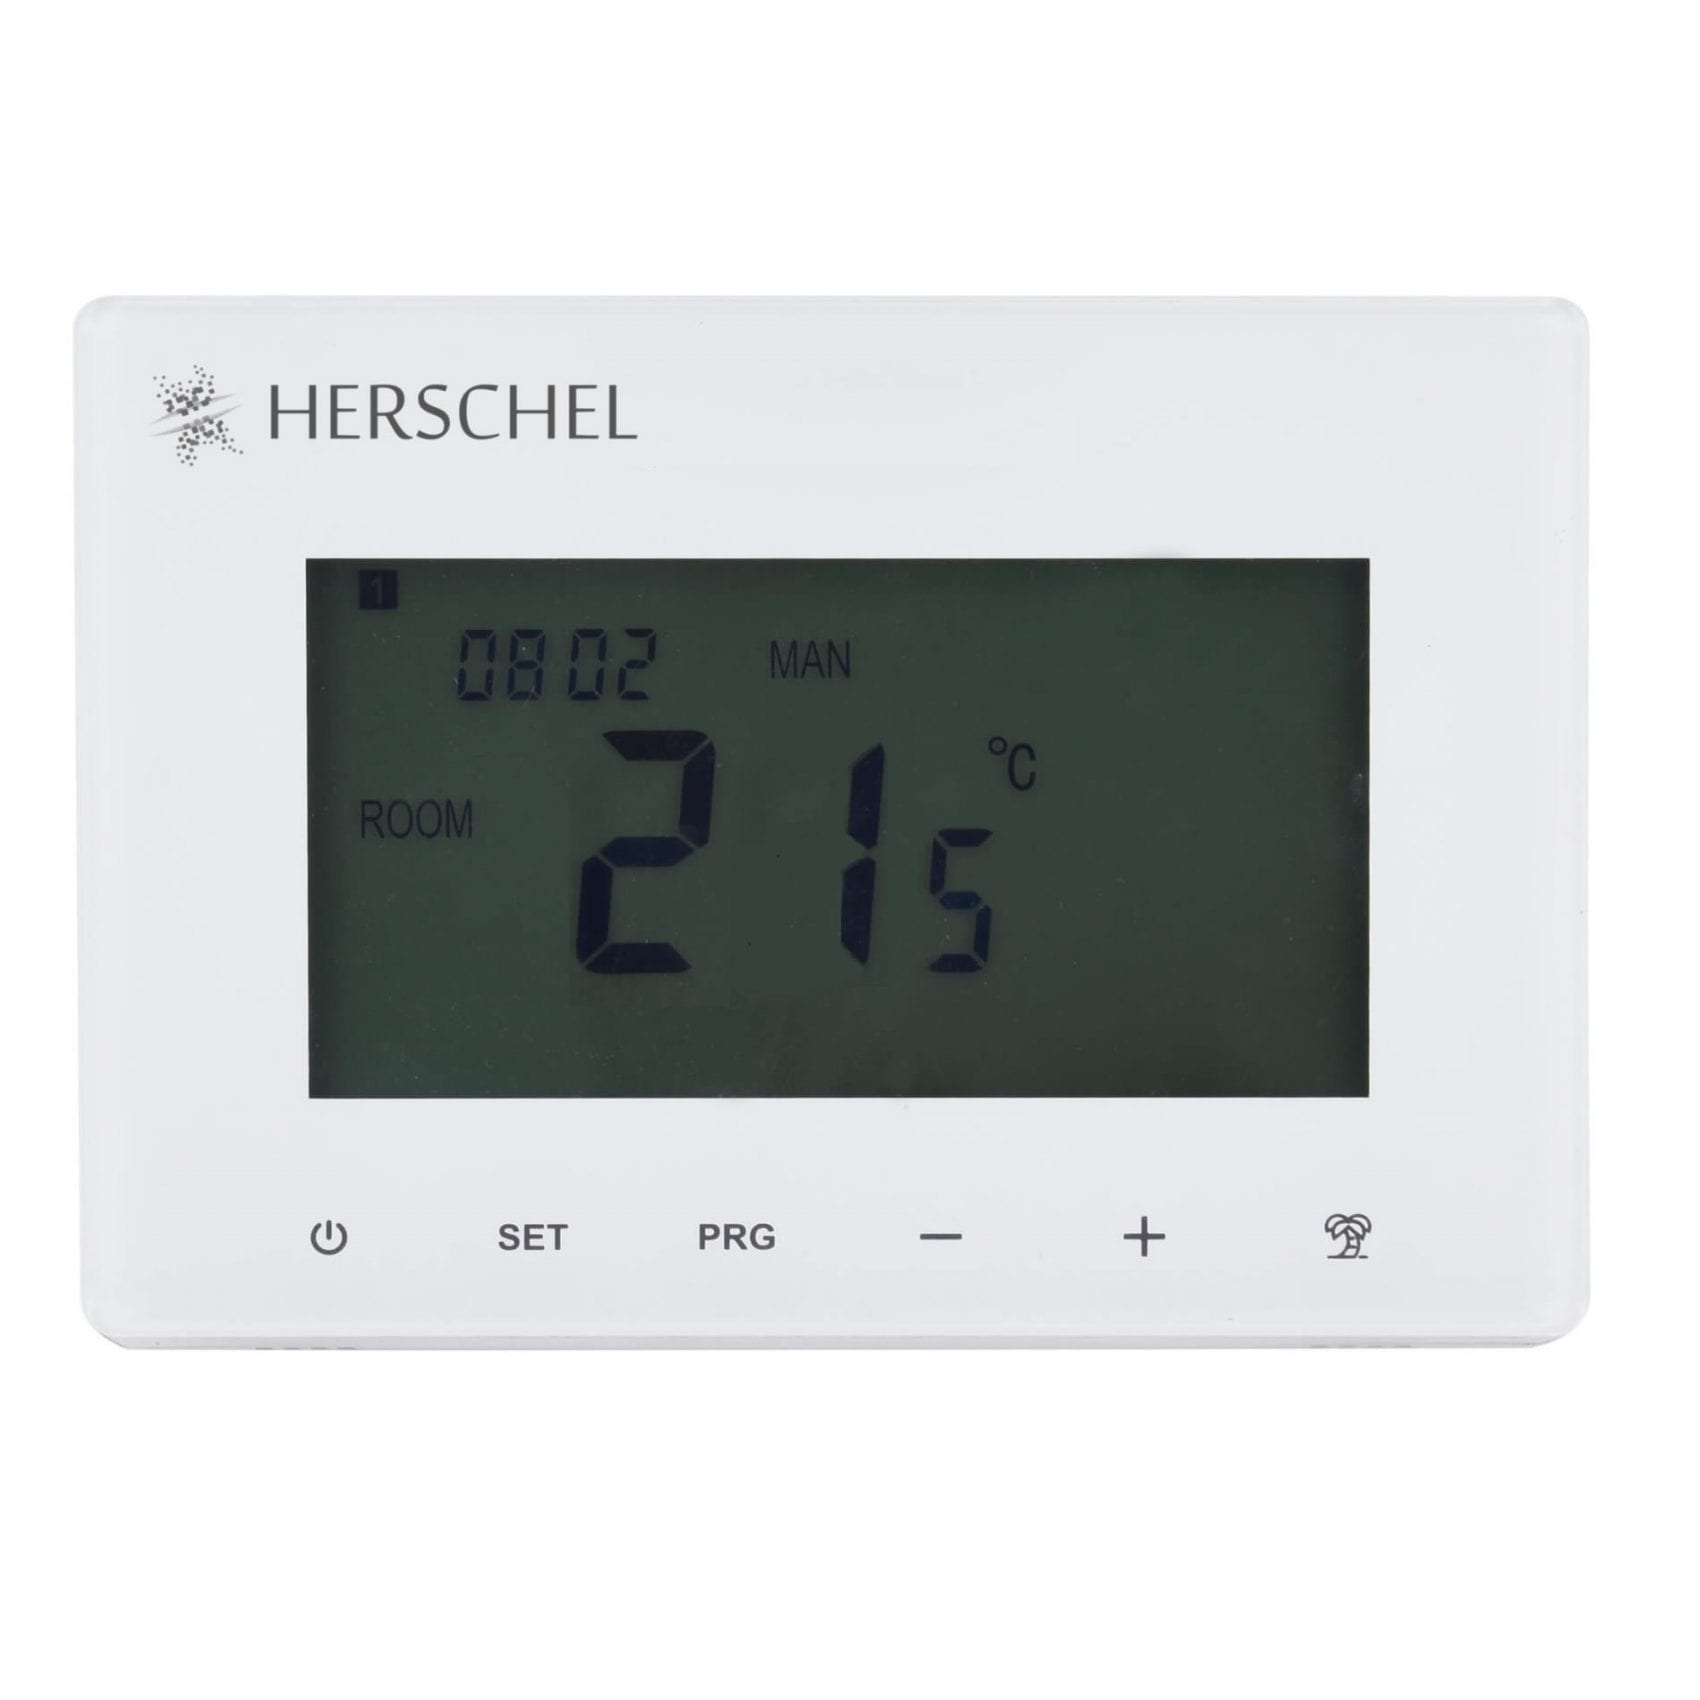 Herschel XLS T-MT Thermostat